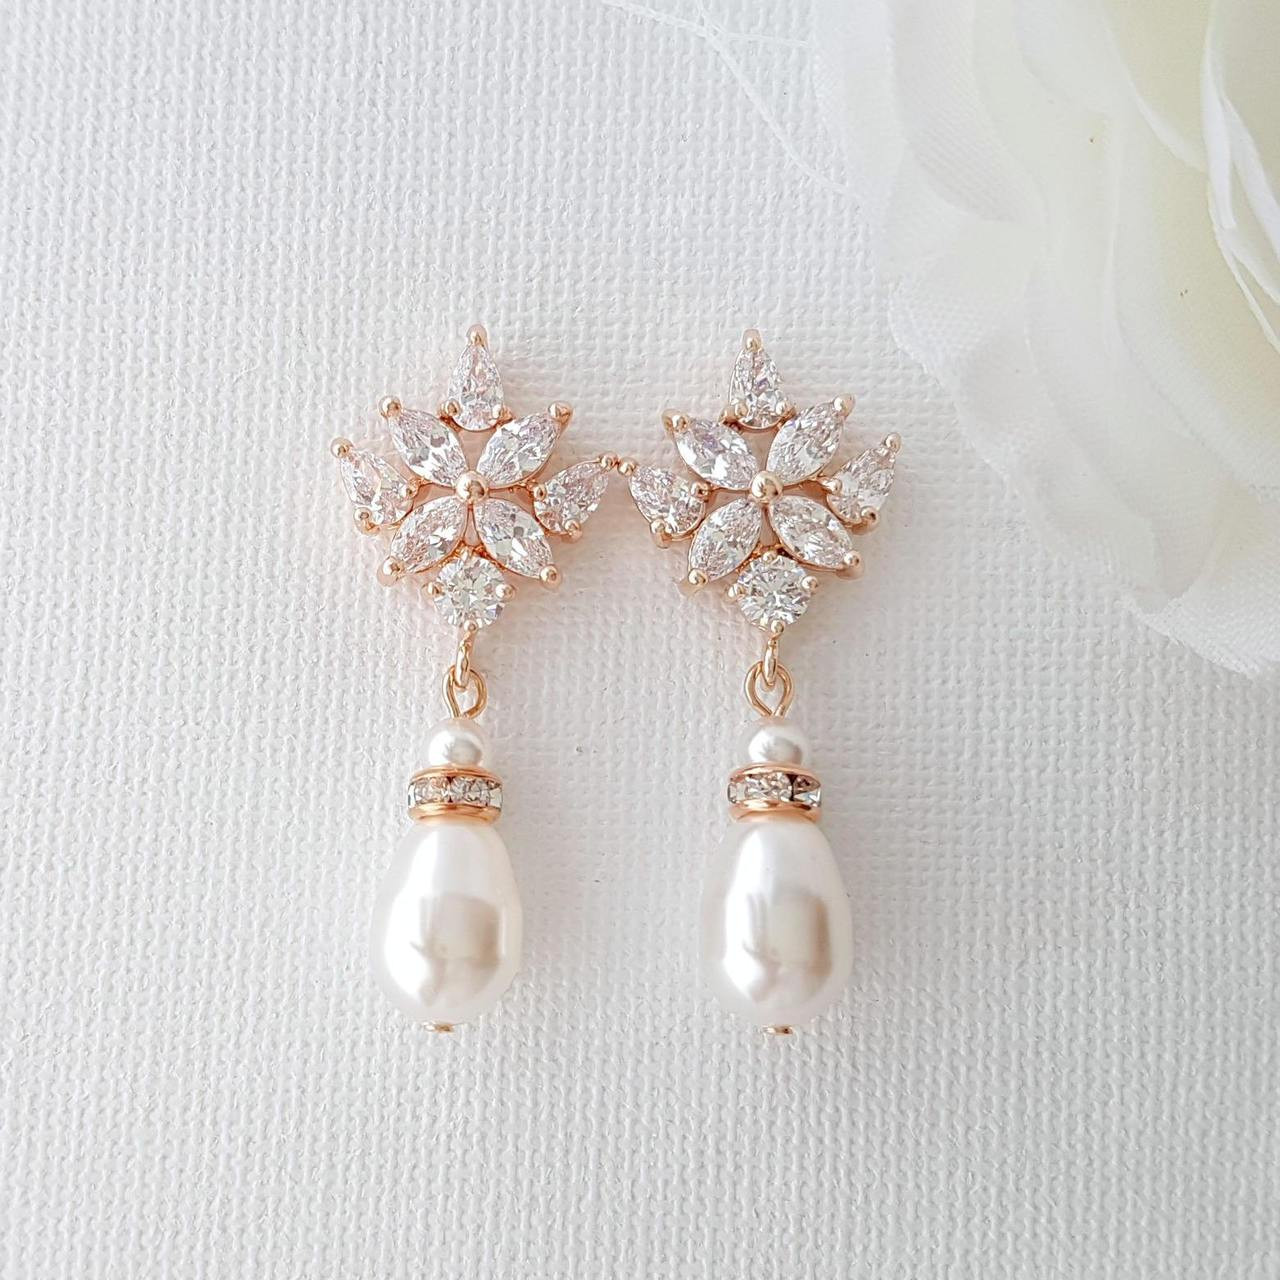 Rose Gold Bridal Earrings Crystal Wedding Earrings Bridesmaid